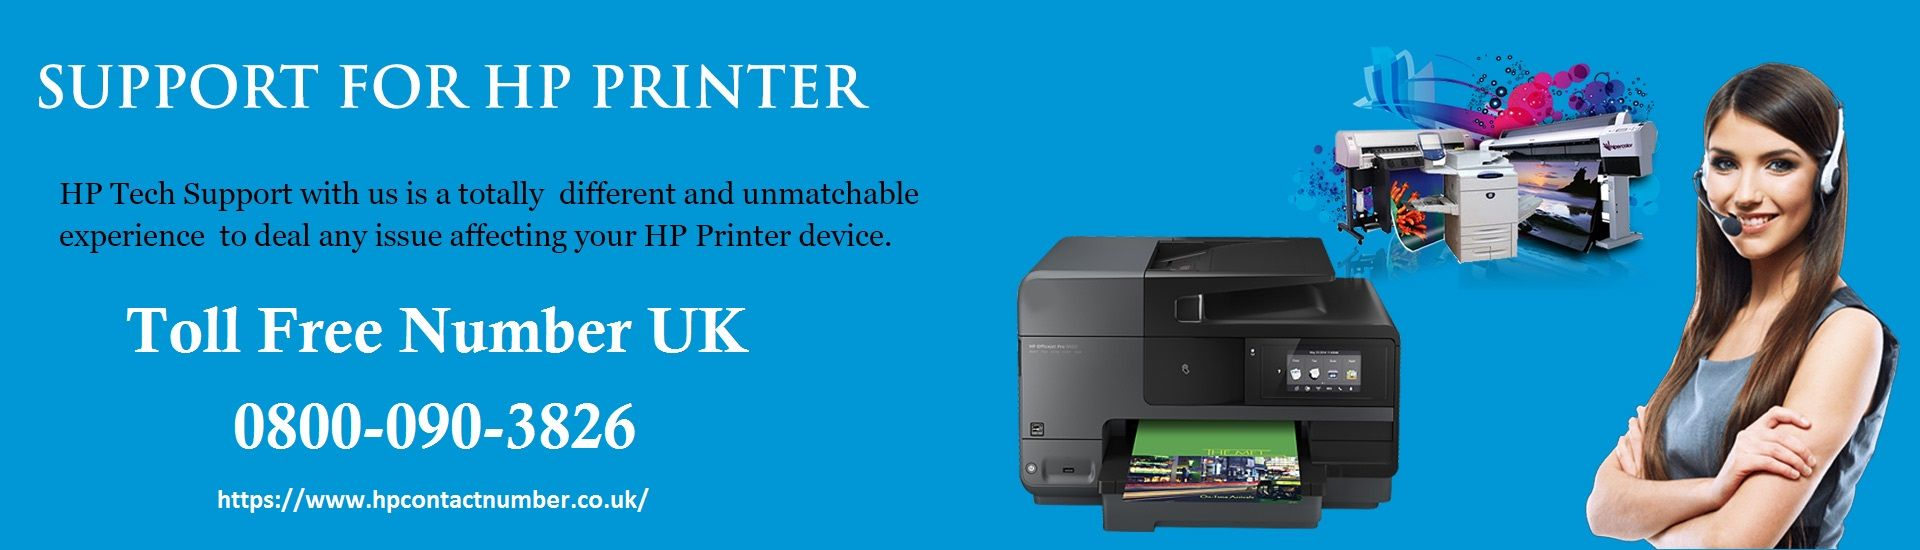 hp printer problem solving